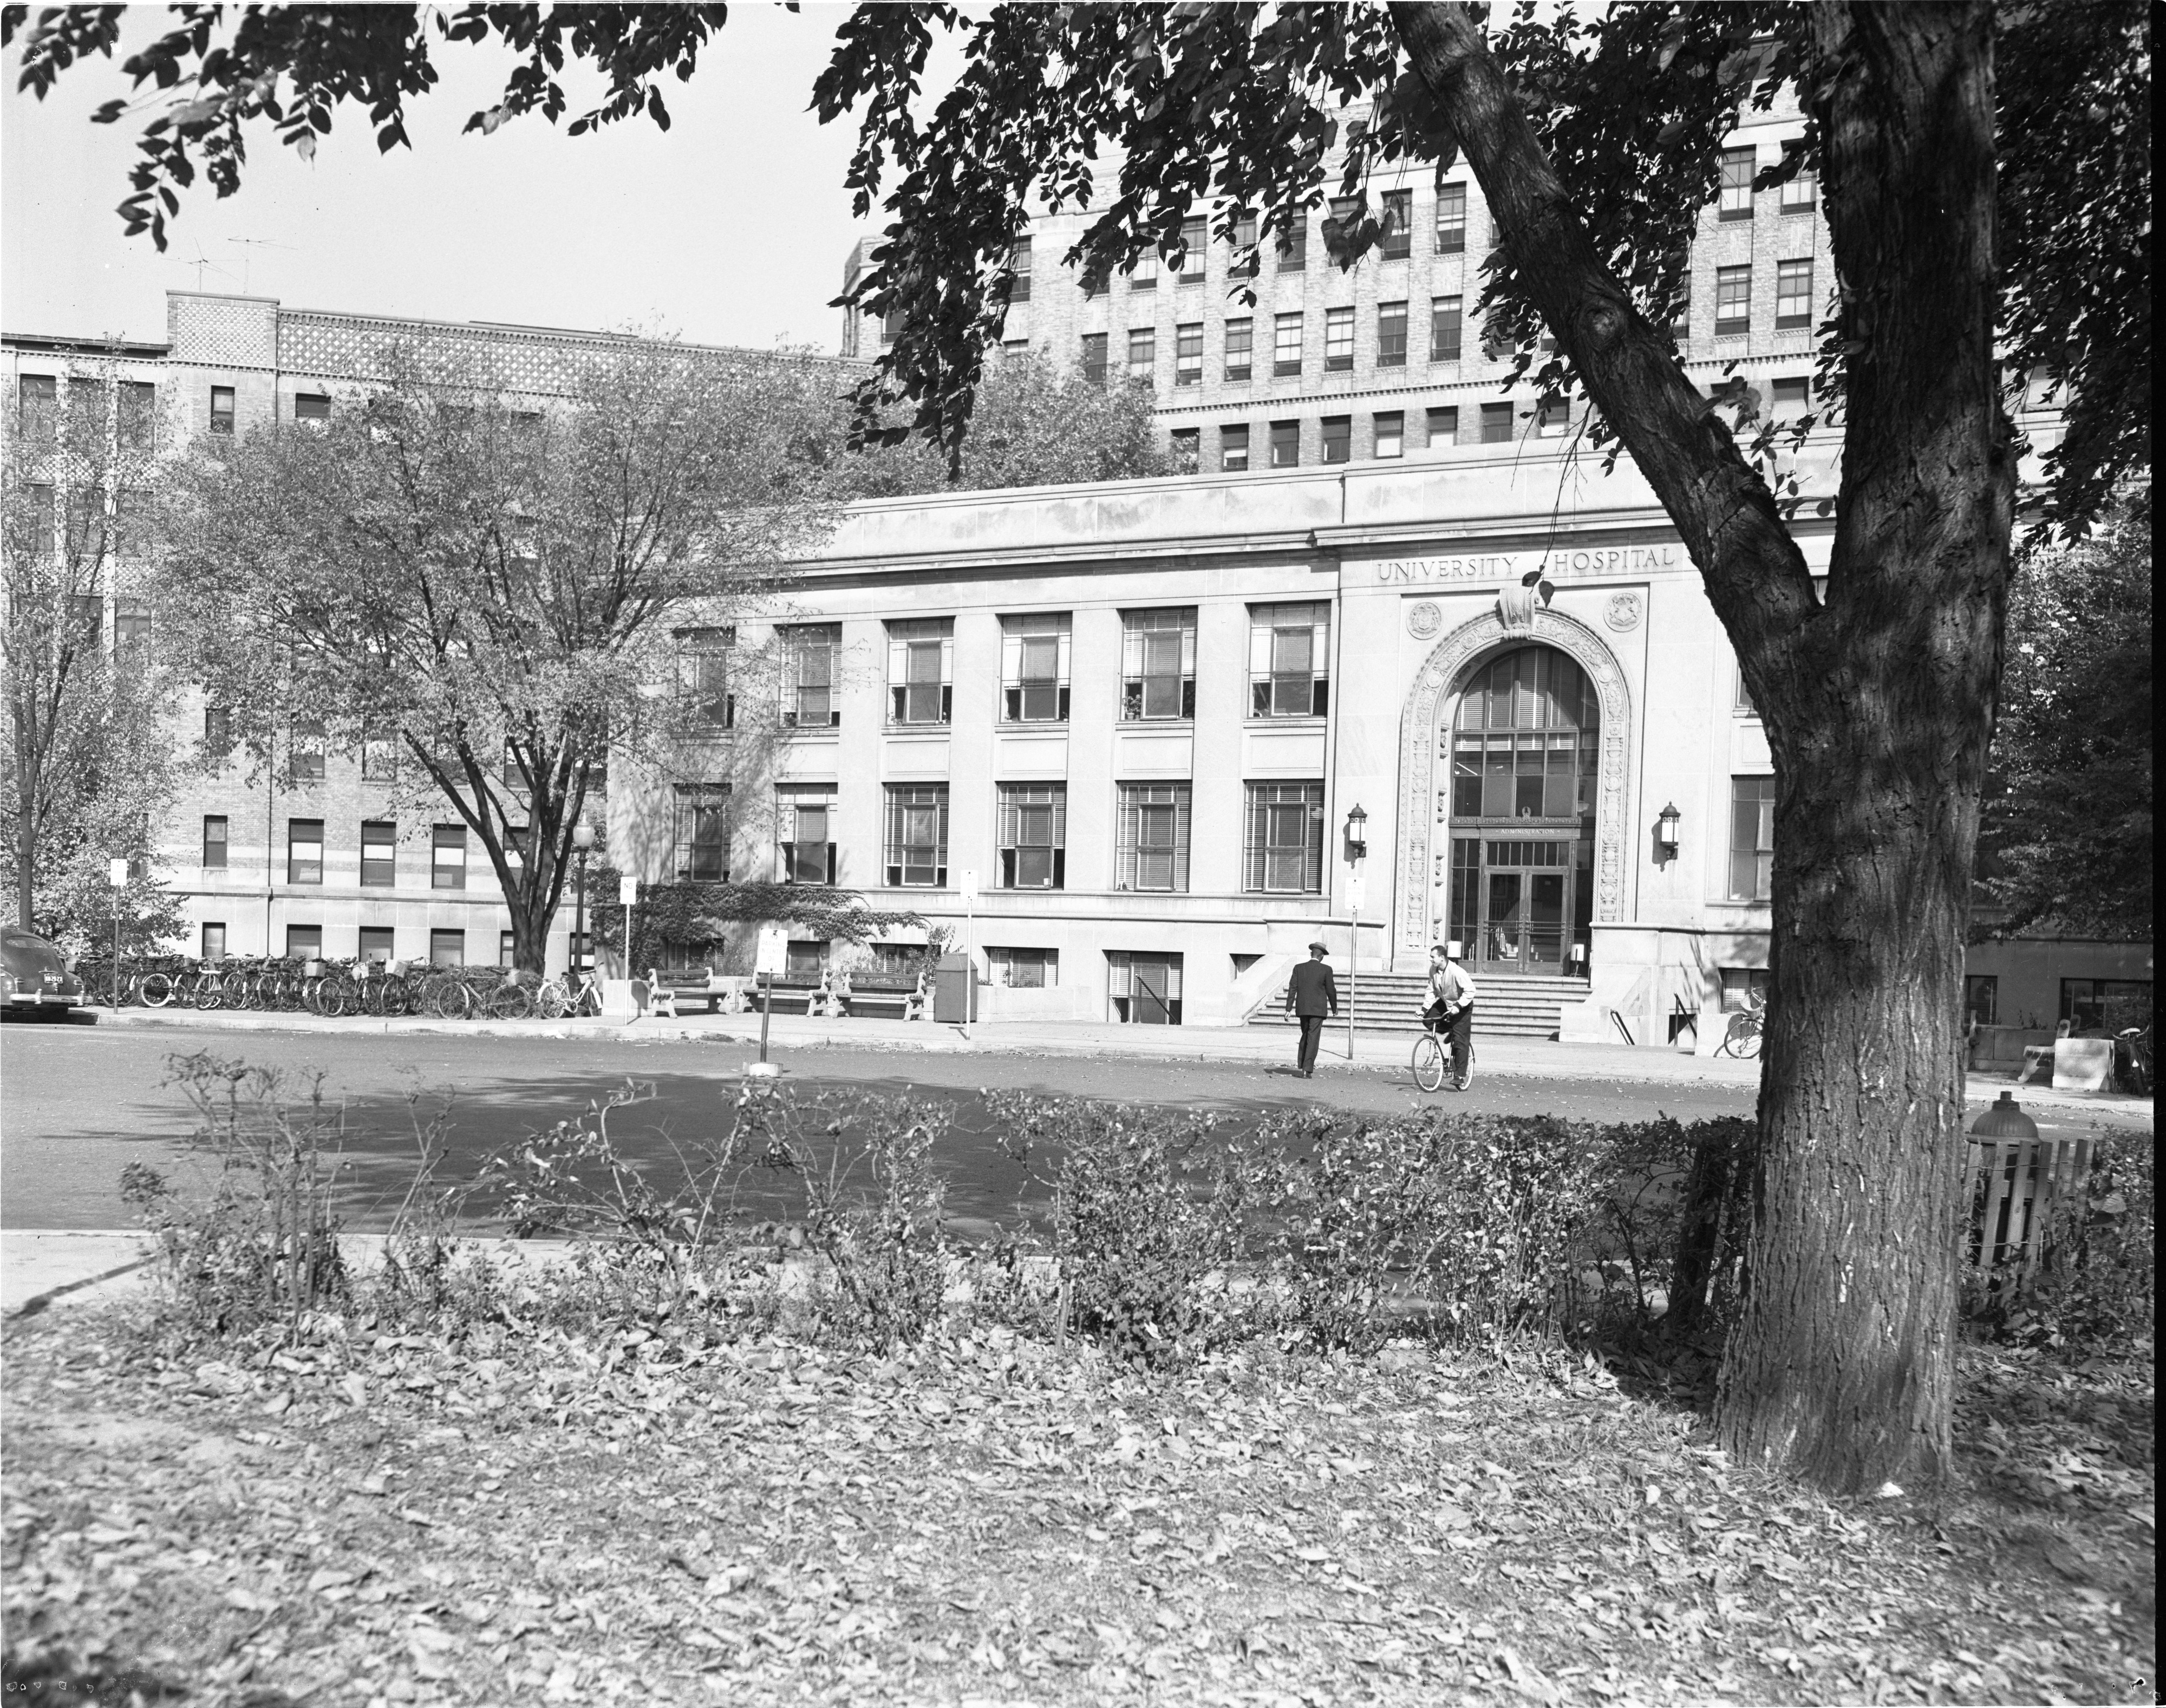 Main Entrance Of University Hospital, October 1953 image